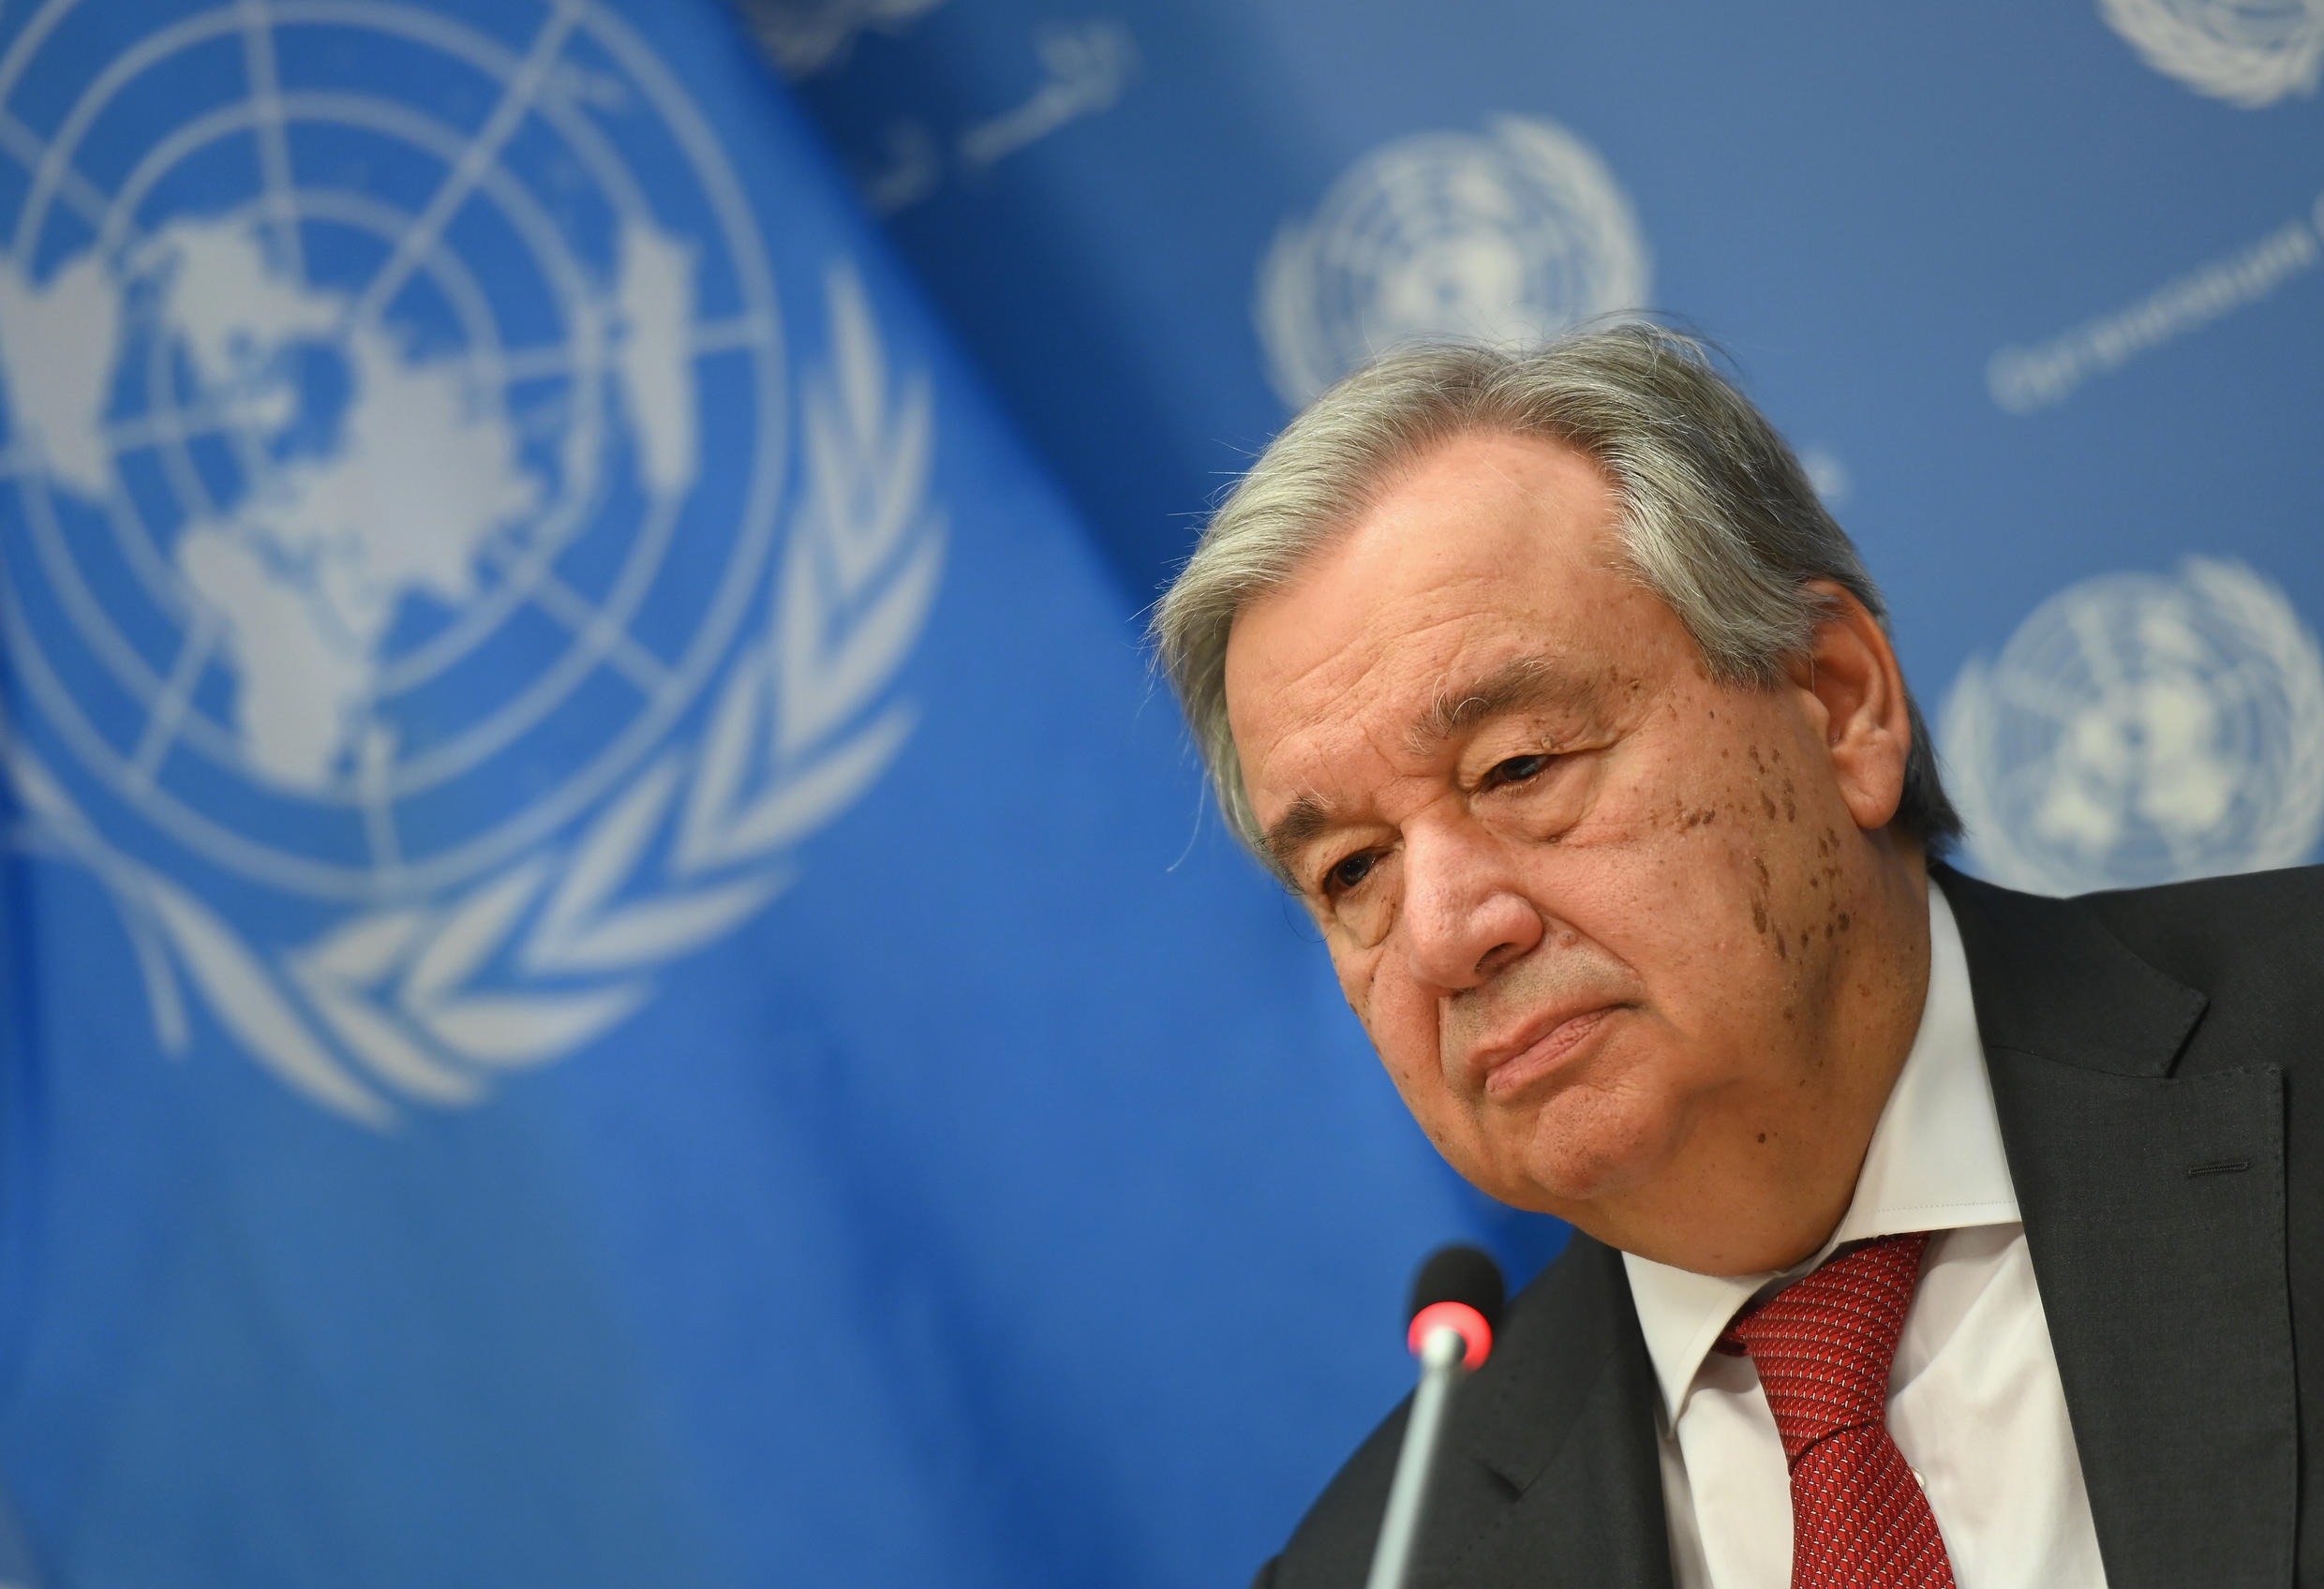 Antonio Guterres, shown in 2020, has said he will seek a second term as secretary-general